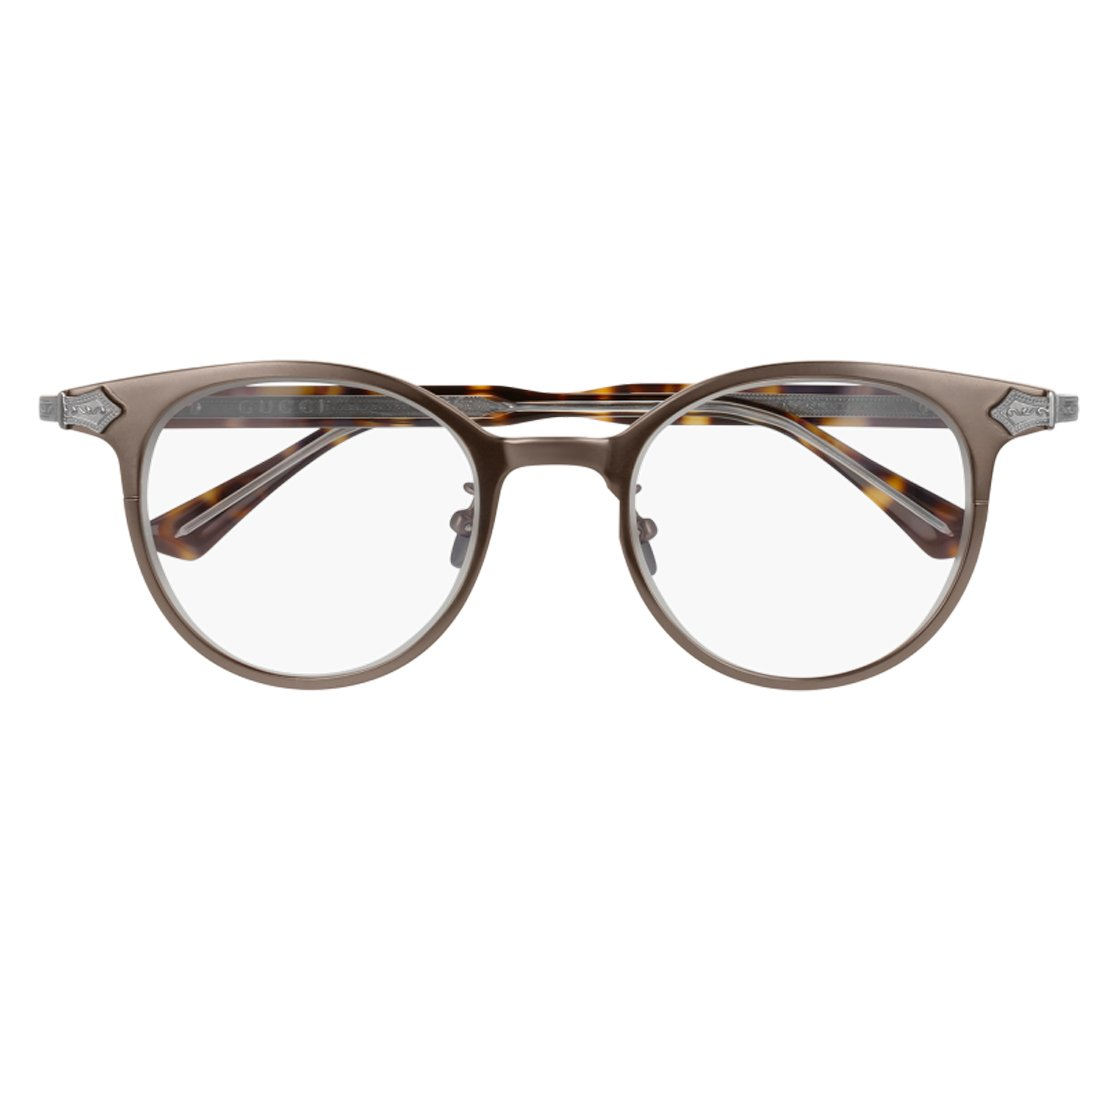 Gucci GG 0068O 002 Brown Ruthenium Titanium Round Eyeglasses 49mm by Gucci